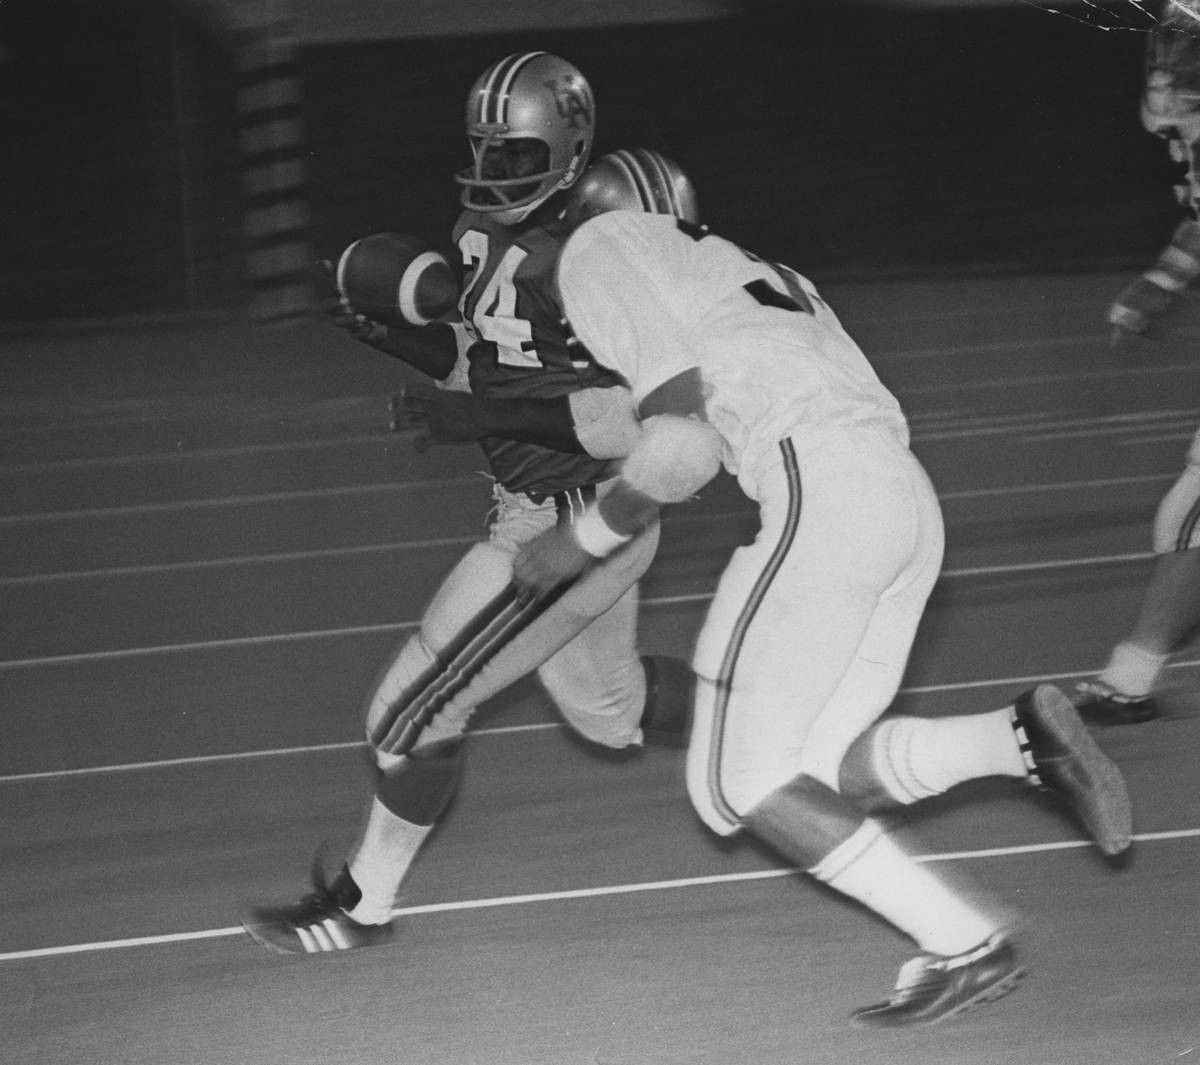 Wayne Nunnely played fullback for UNLV in 1972. Photo courtesy of UNLV athletics.